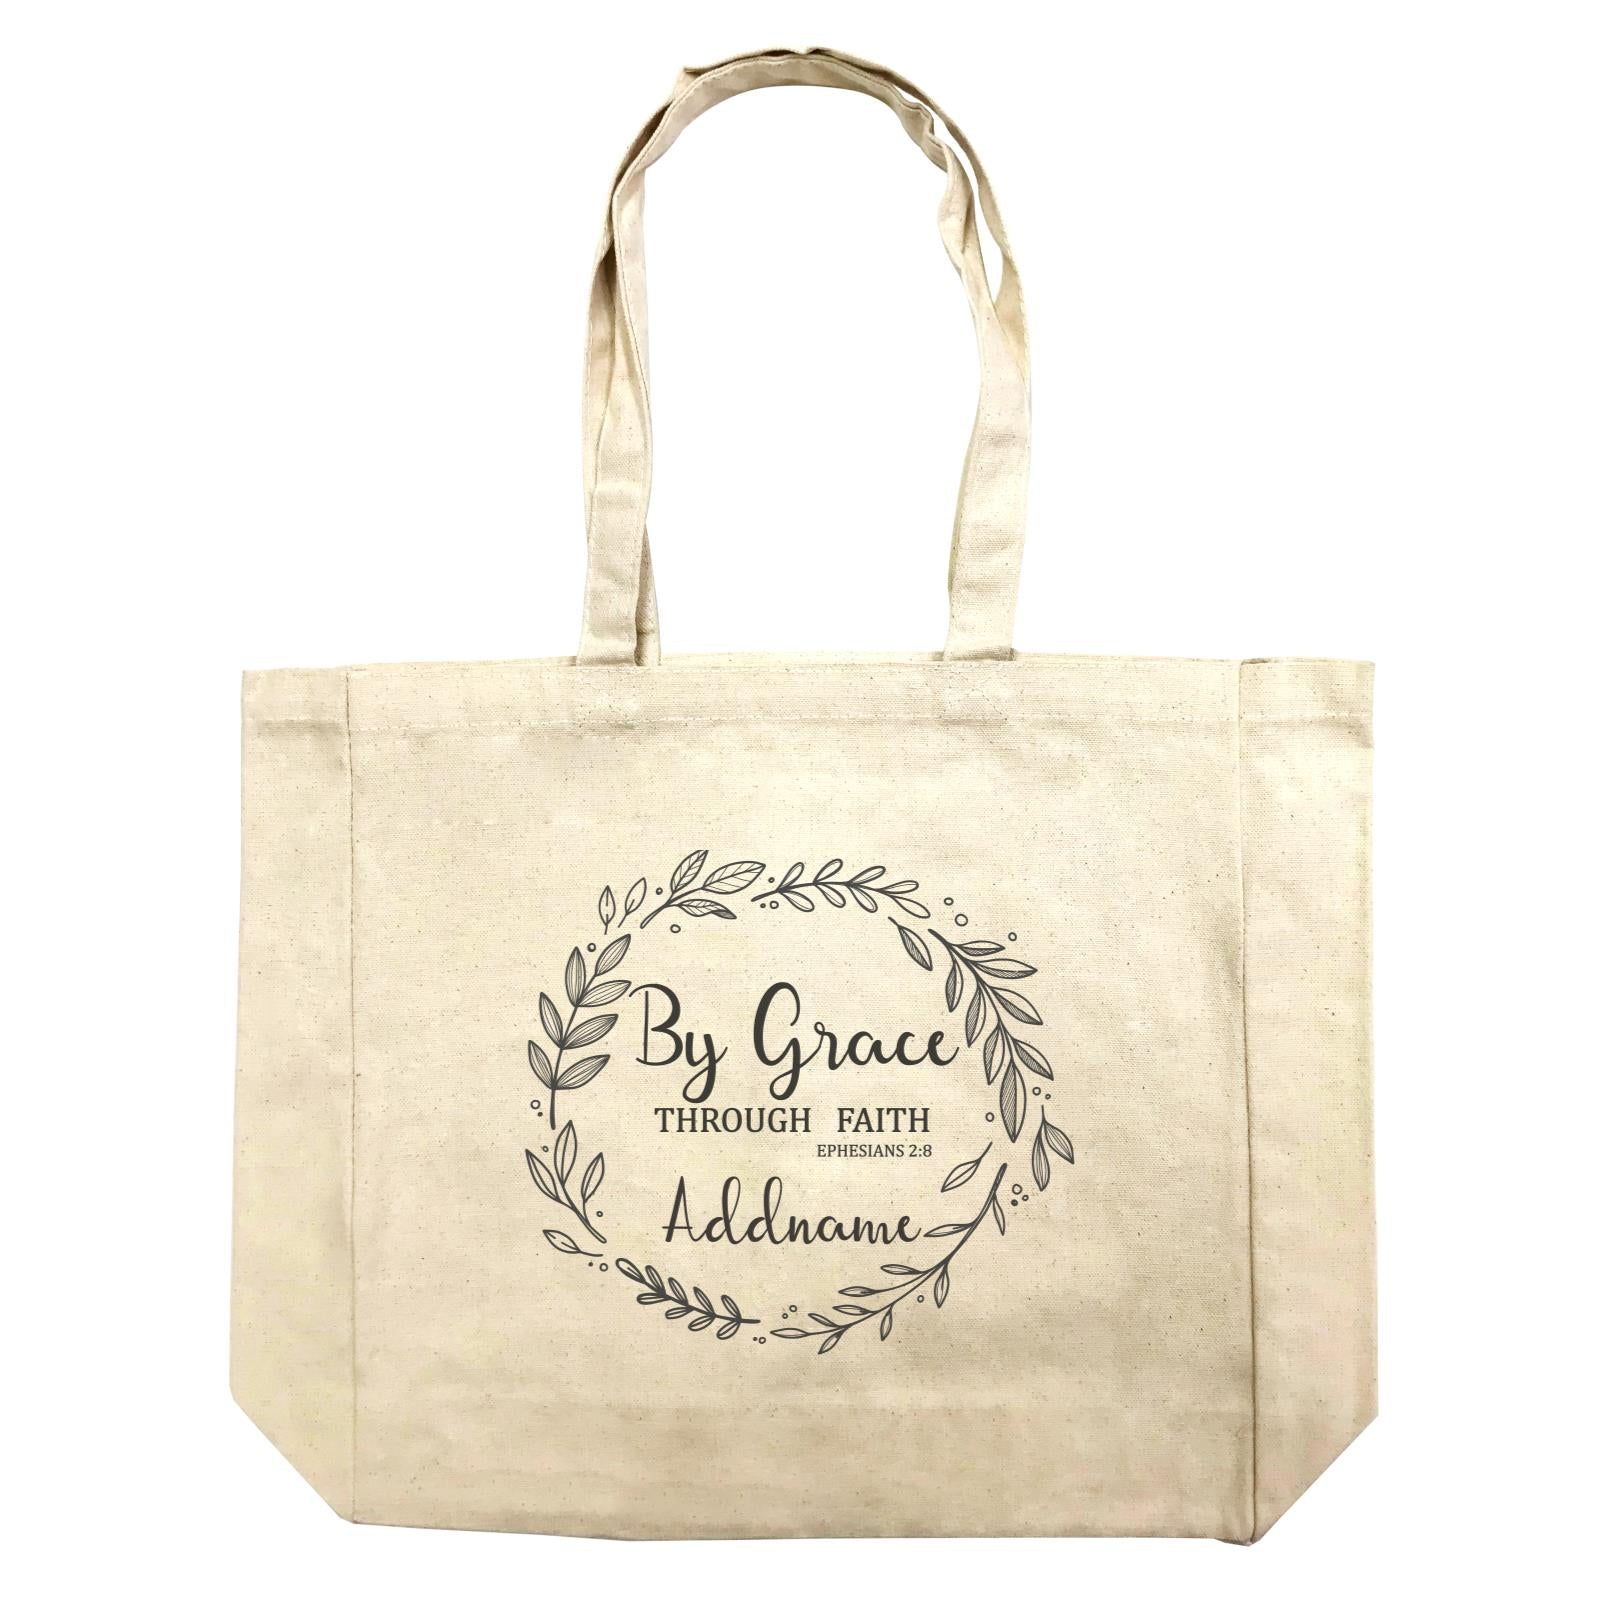 Christian Series By Grace Throug Faith Ephensians 2.8 Addname Shopping Bag